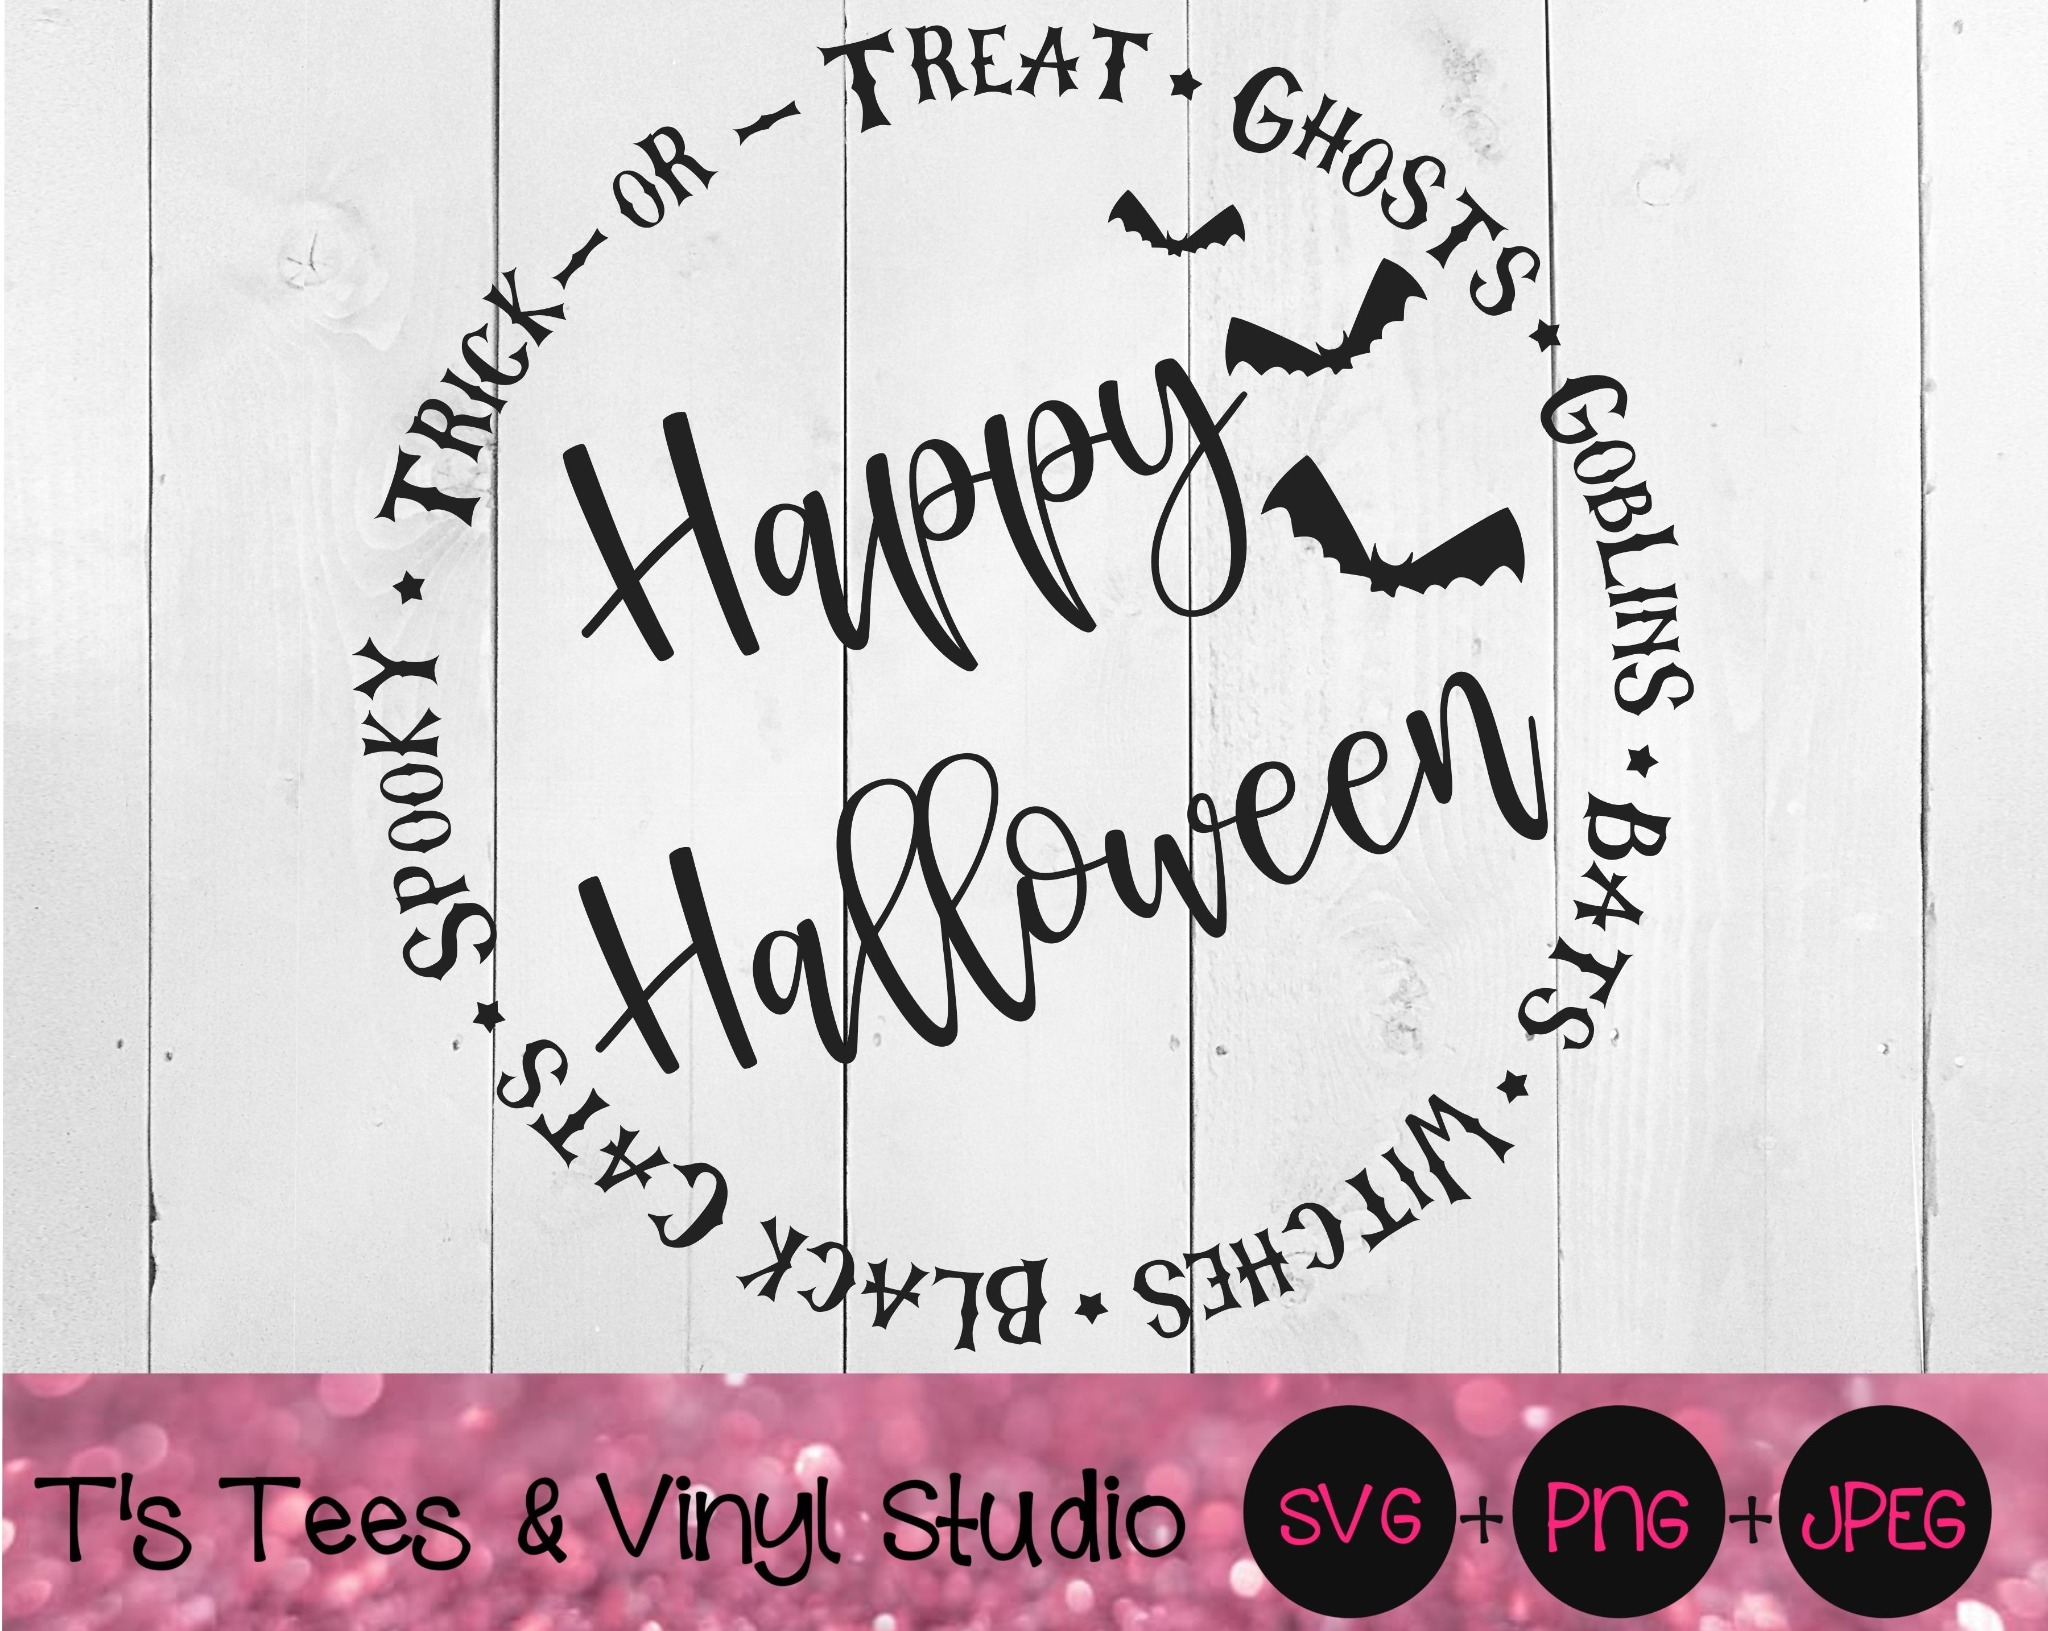 Happy Halloween Svg, Halloween Circle Svg, Witches Svg, Black Cats Svg, Ghosts, Goblins, Bats, Spook